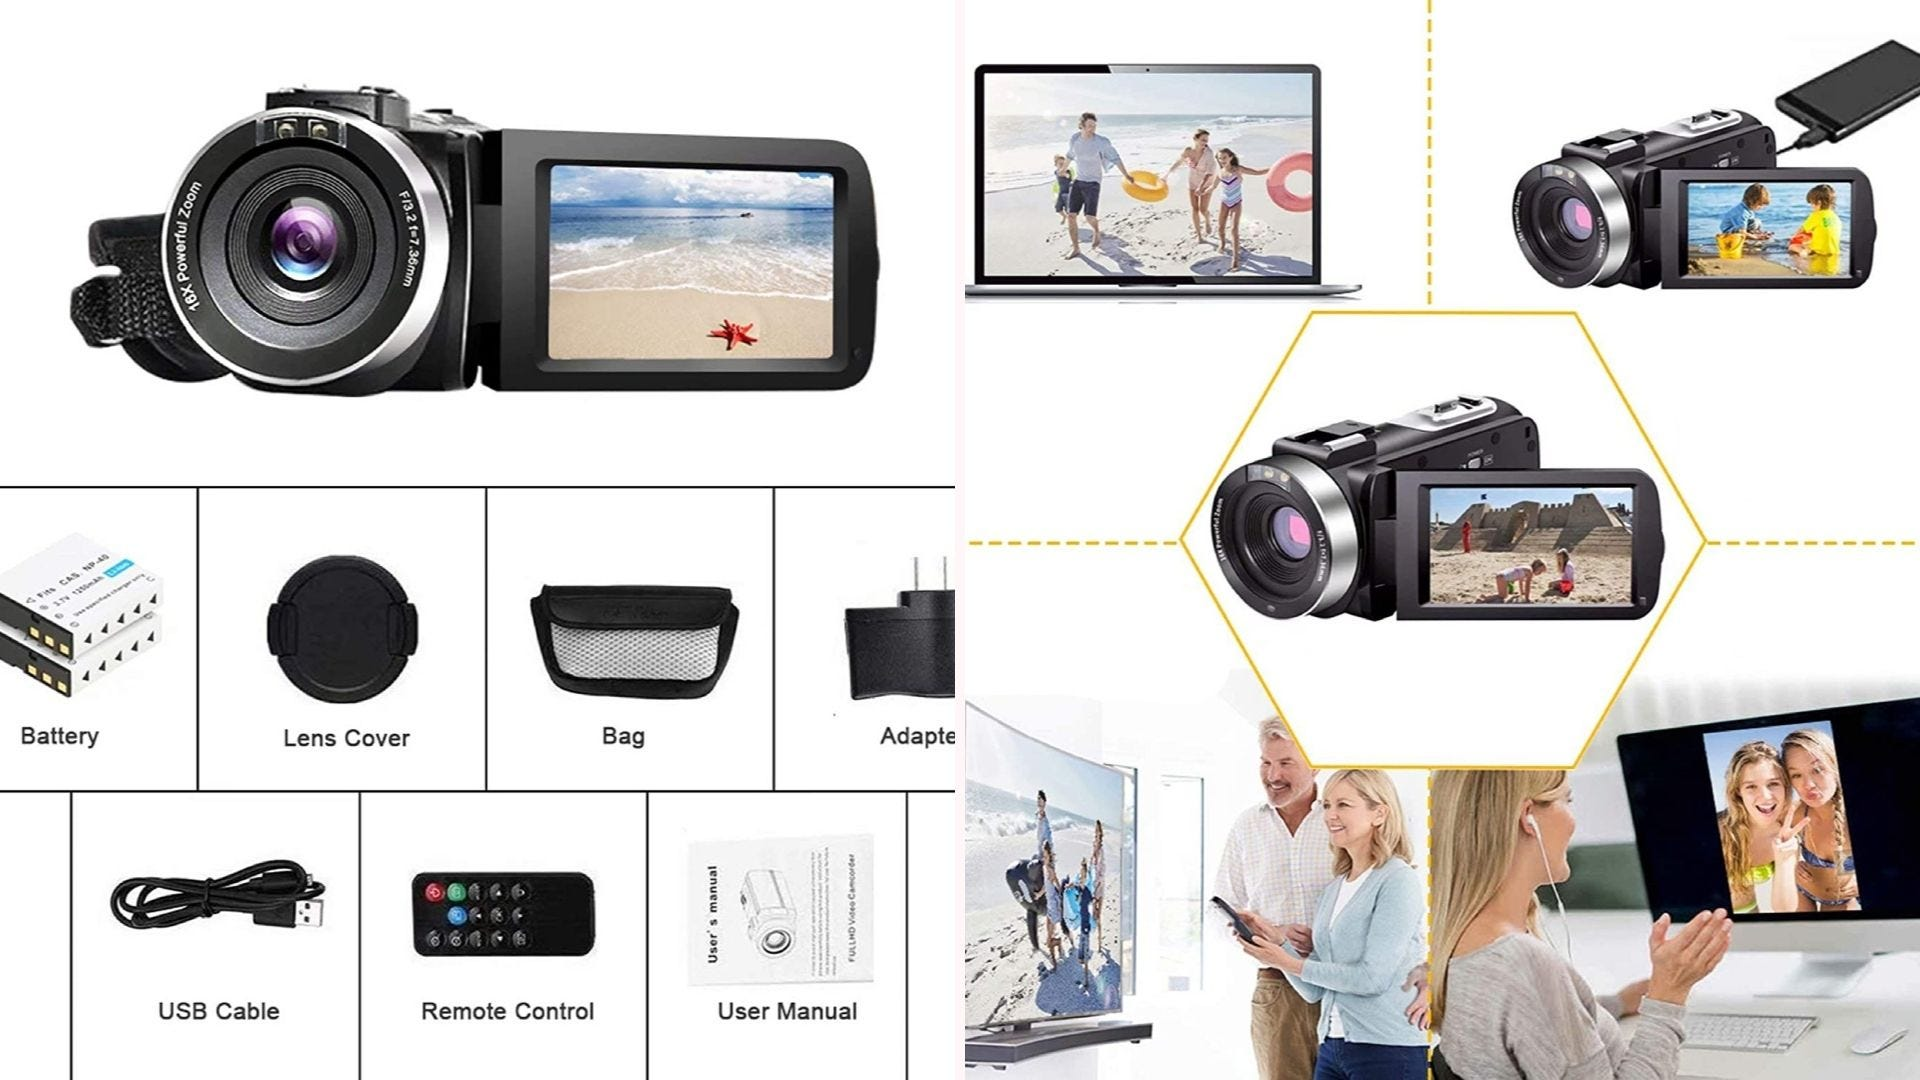 On the left, a black and silver camcorder with a three-inch screen rests above the its complimentary pieces, like two batteries, an adapter, and a USB cable. On the right, the camcorder is surrounded by four means of presentation: laptop, TV, webcam, and the ability to record while charge.